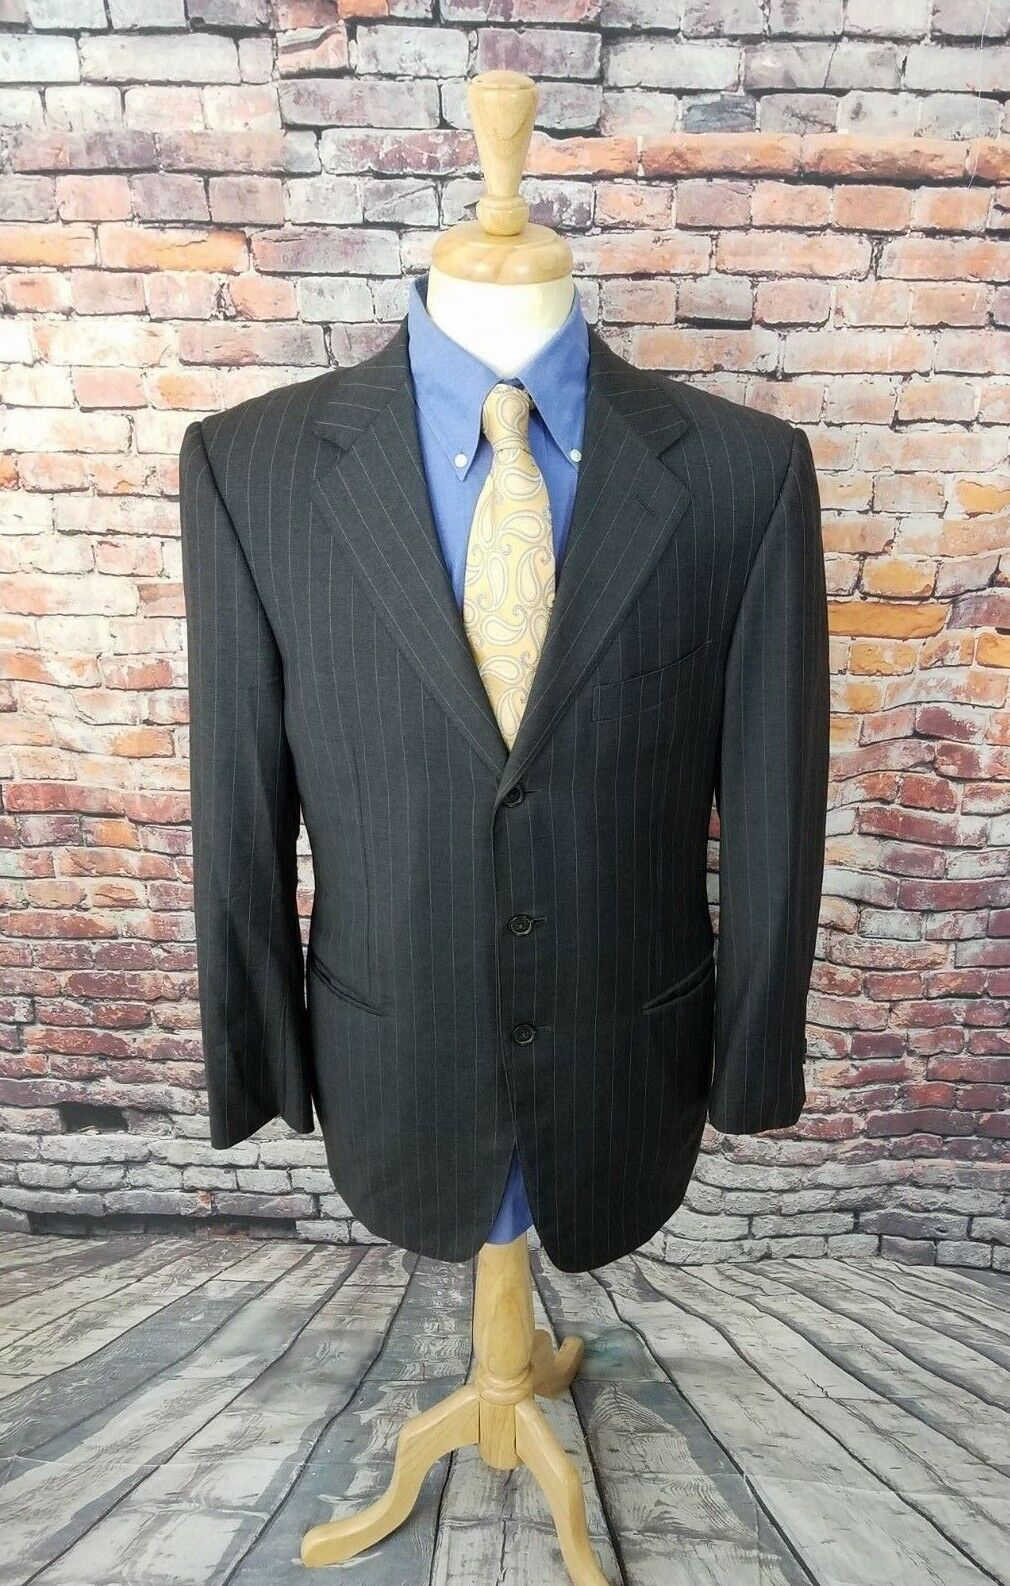 Ermenegildo Zegna Trofeo Switzerland 40R Grey Striped Wool Sport Coat Blazer EUC